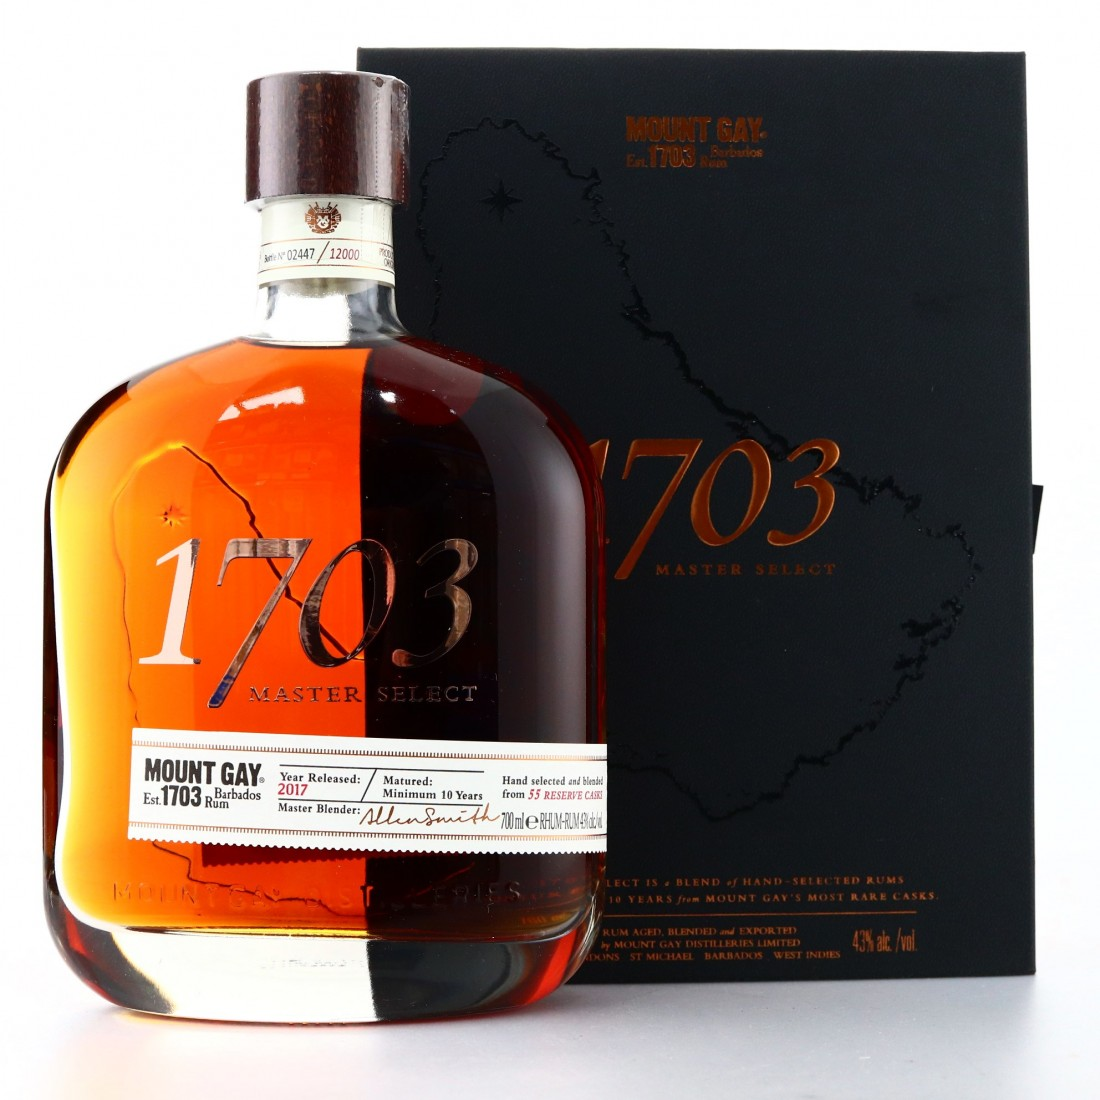 Mount Gay '1703' Master Select 10 Year Old